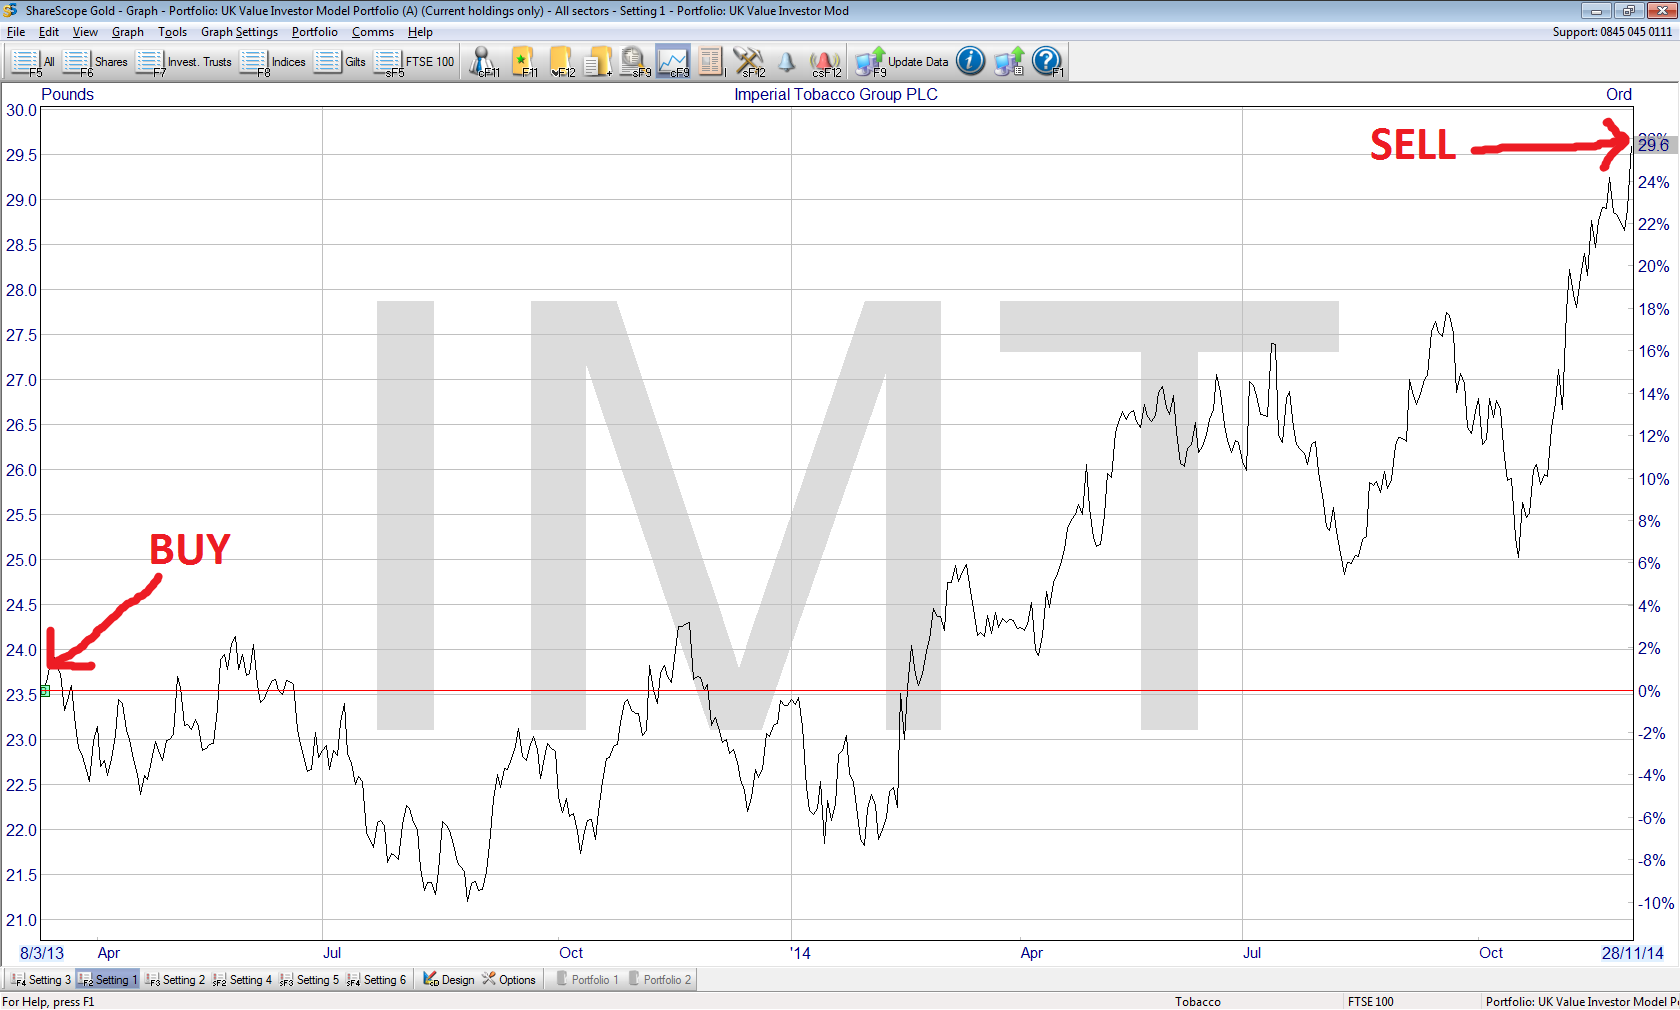 Imperial Tobacco share price performance 2014 12